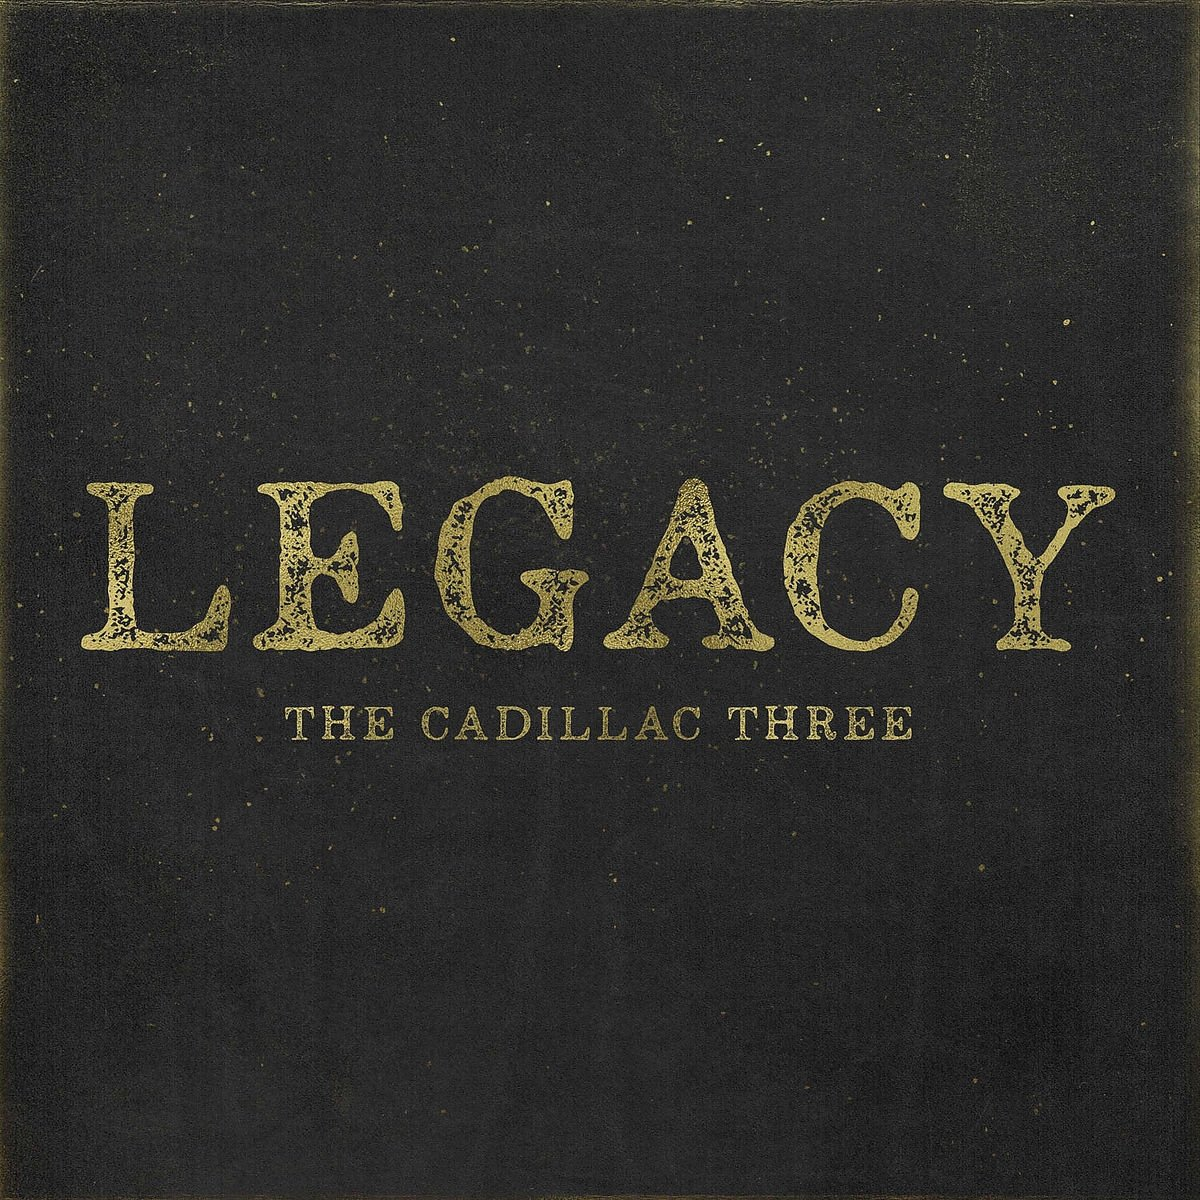 The Cadillac Three - Legacy (2017) [FLAC] Download